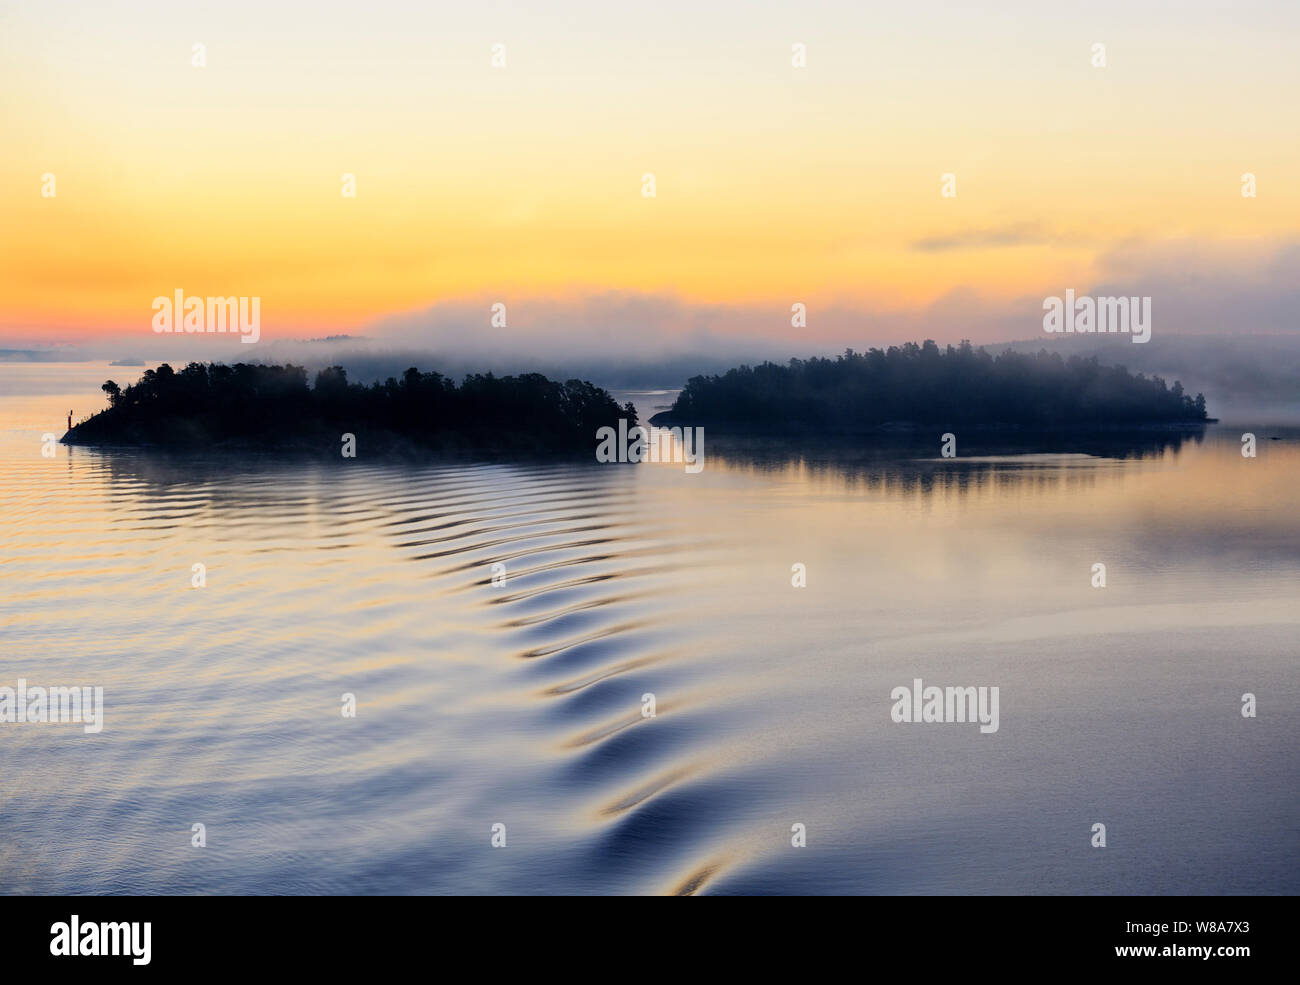 forested-islands-in-silhouette-in-the-stockholm-archipelago-along-the-swedish-coast-seen-from-the-baltic-sea-on-a-foggy-morning-beautiful-sunrise-W8A7X3.jpg